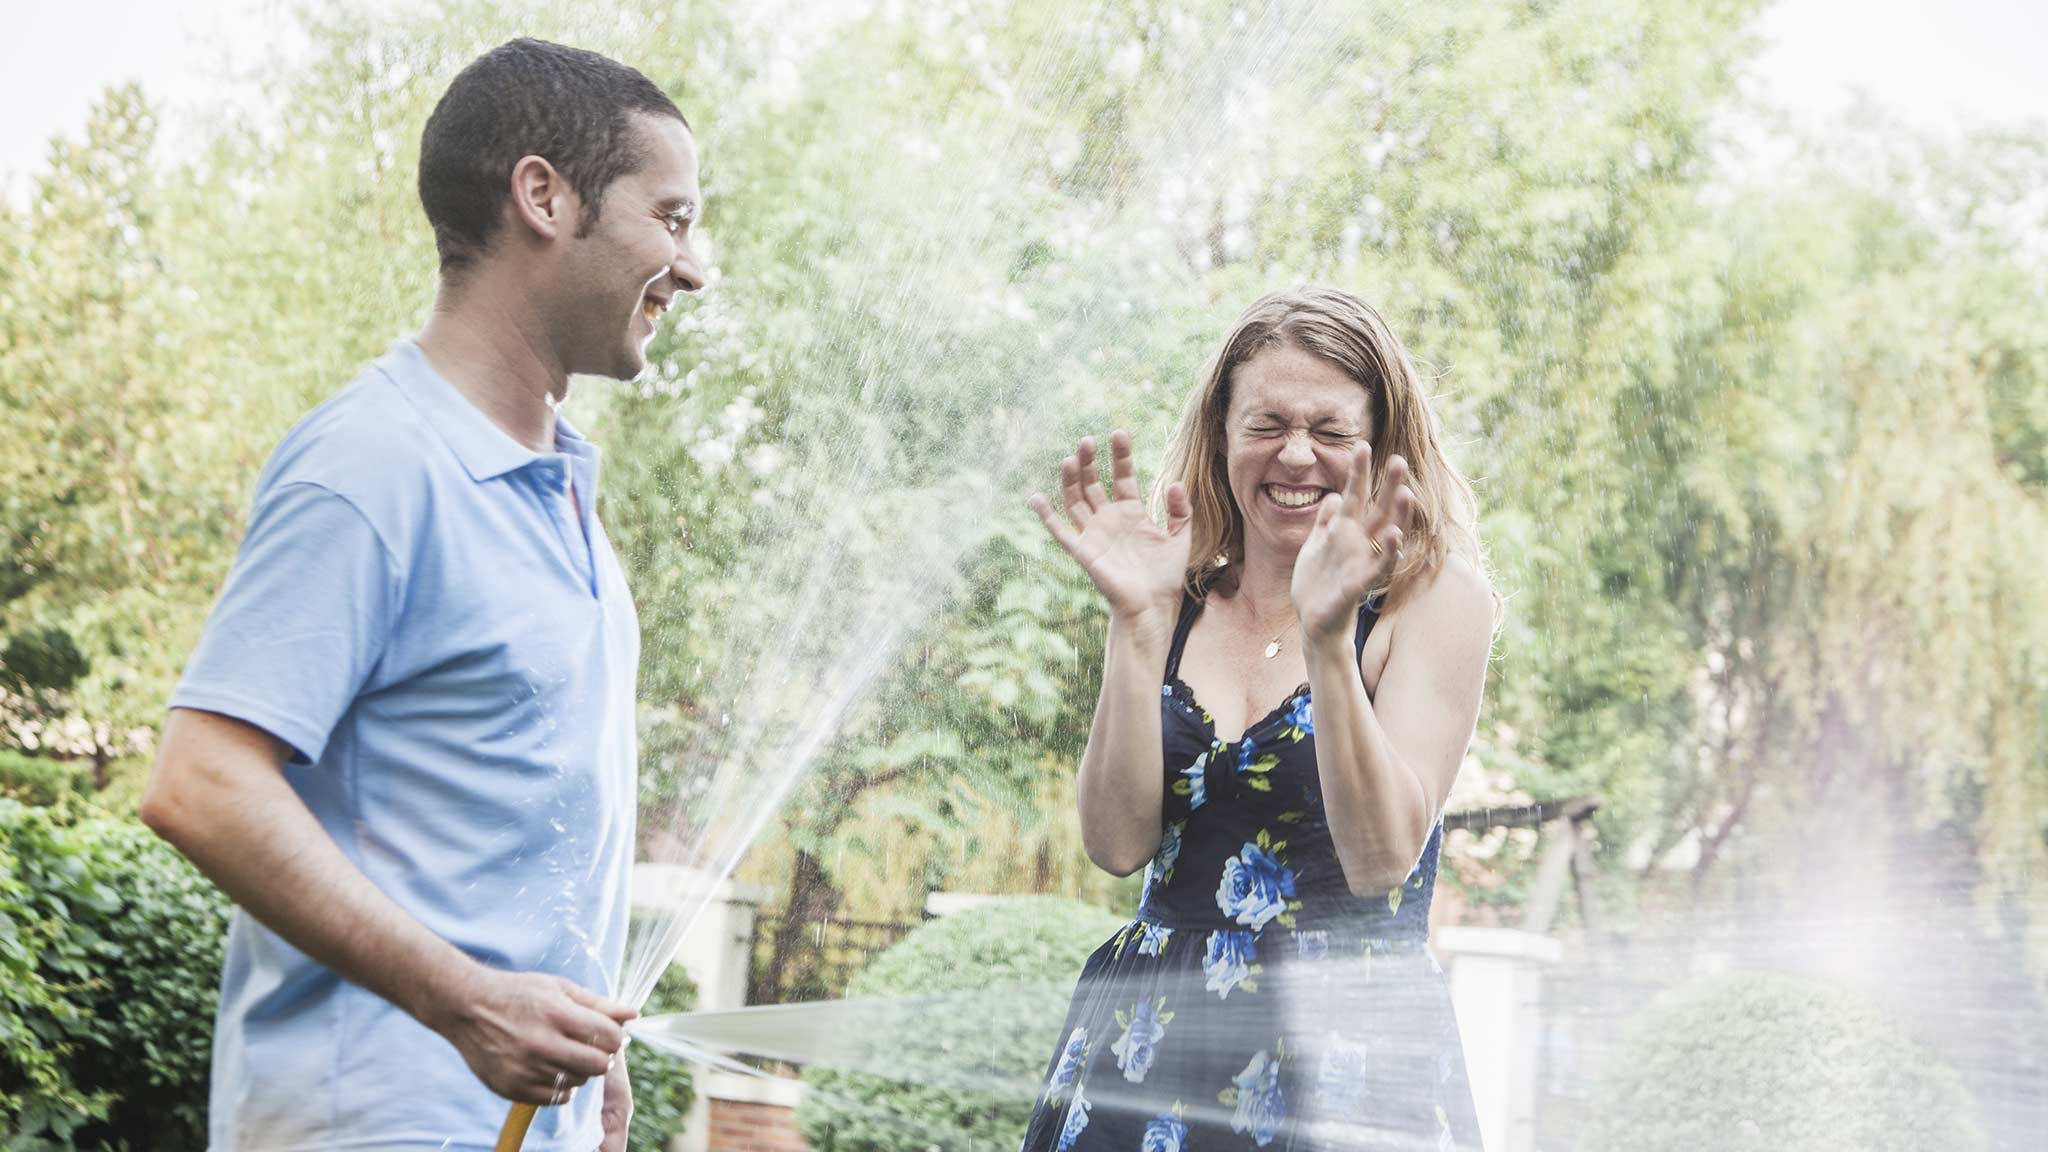 Photograph Of Caucasian Man Playfully Spraying Caucasian Woman With A Water Hose